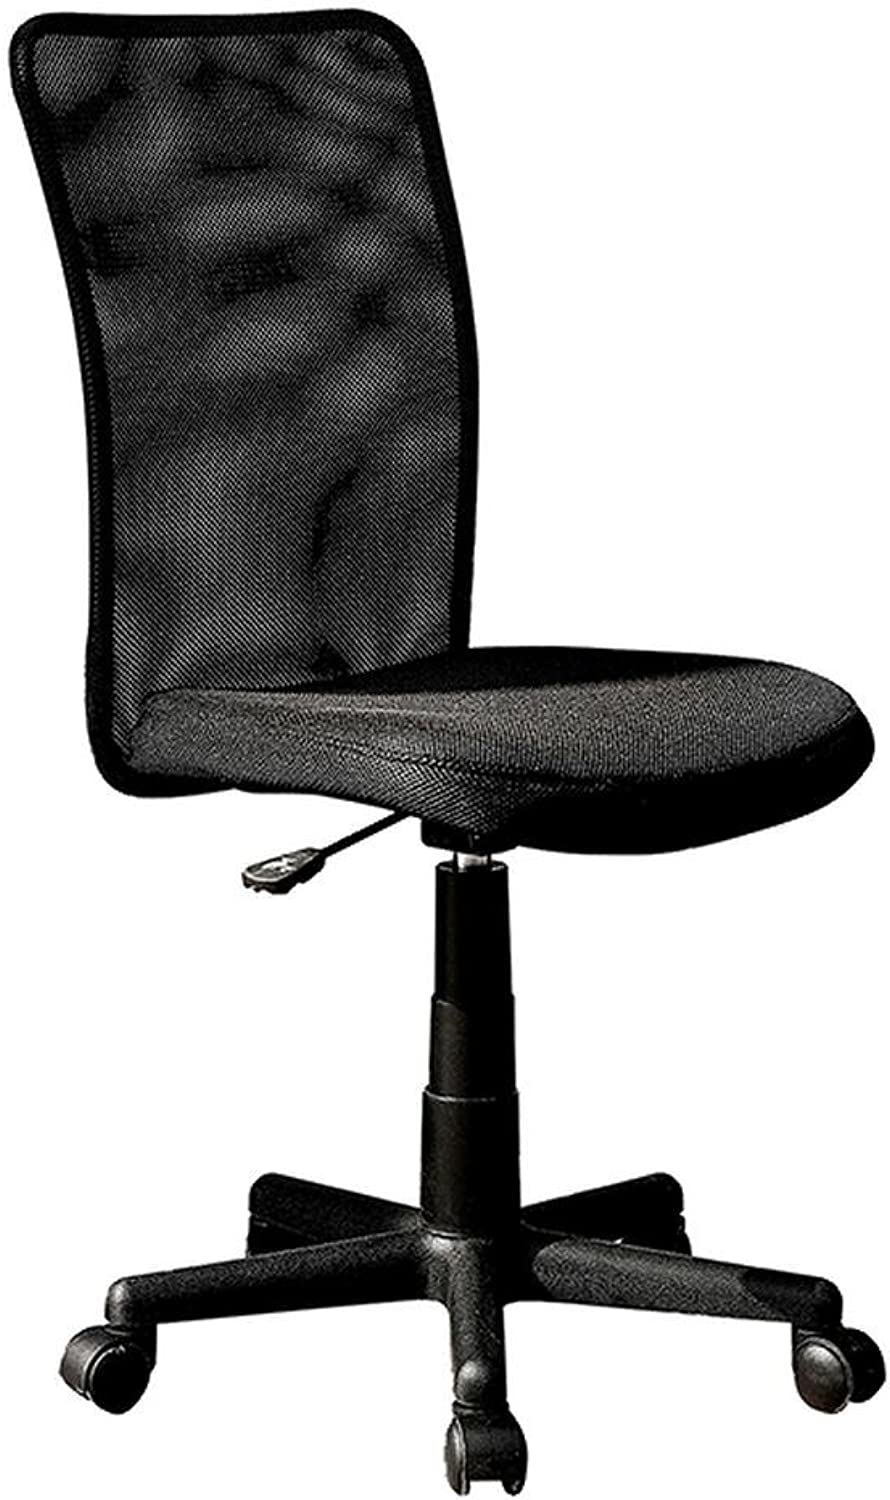 Techni Mobili Mesh Swivel Task Office Chair, Black